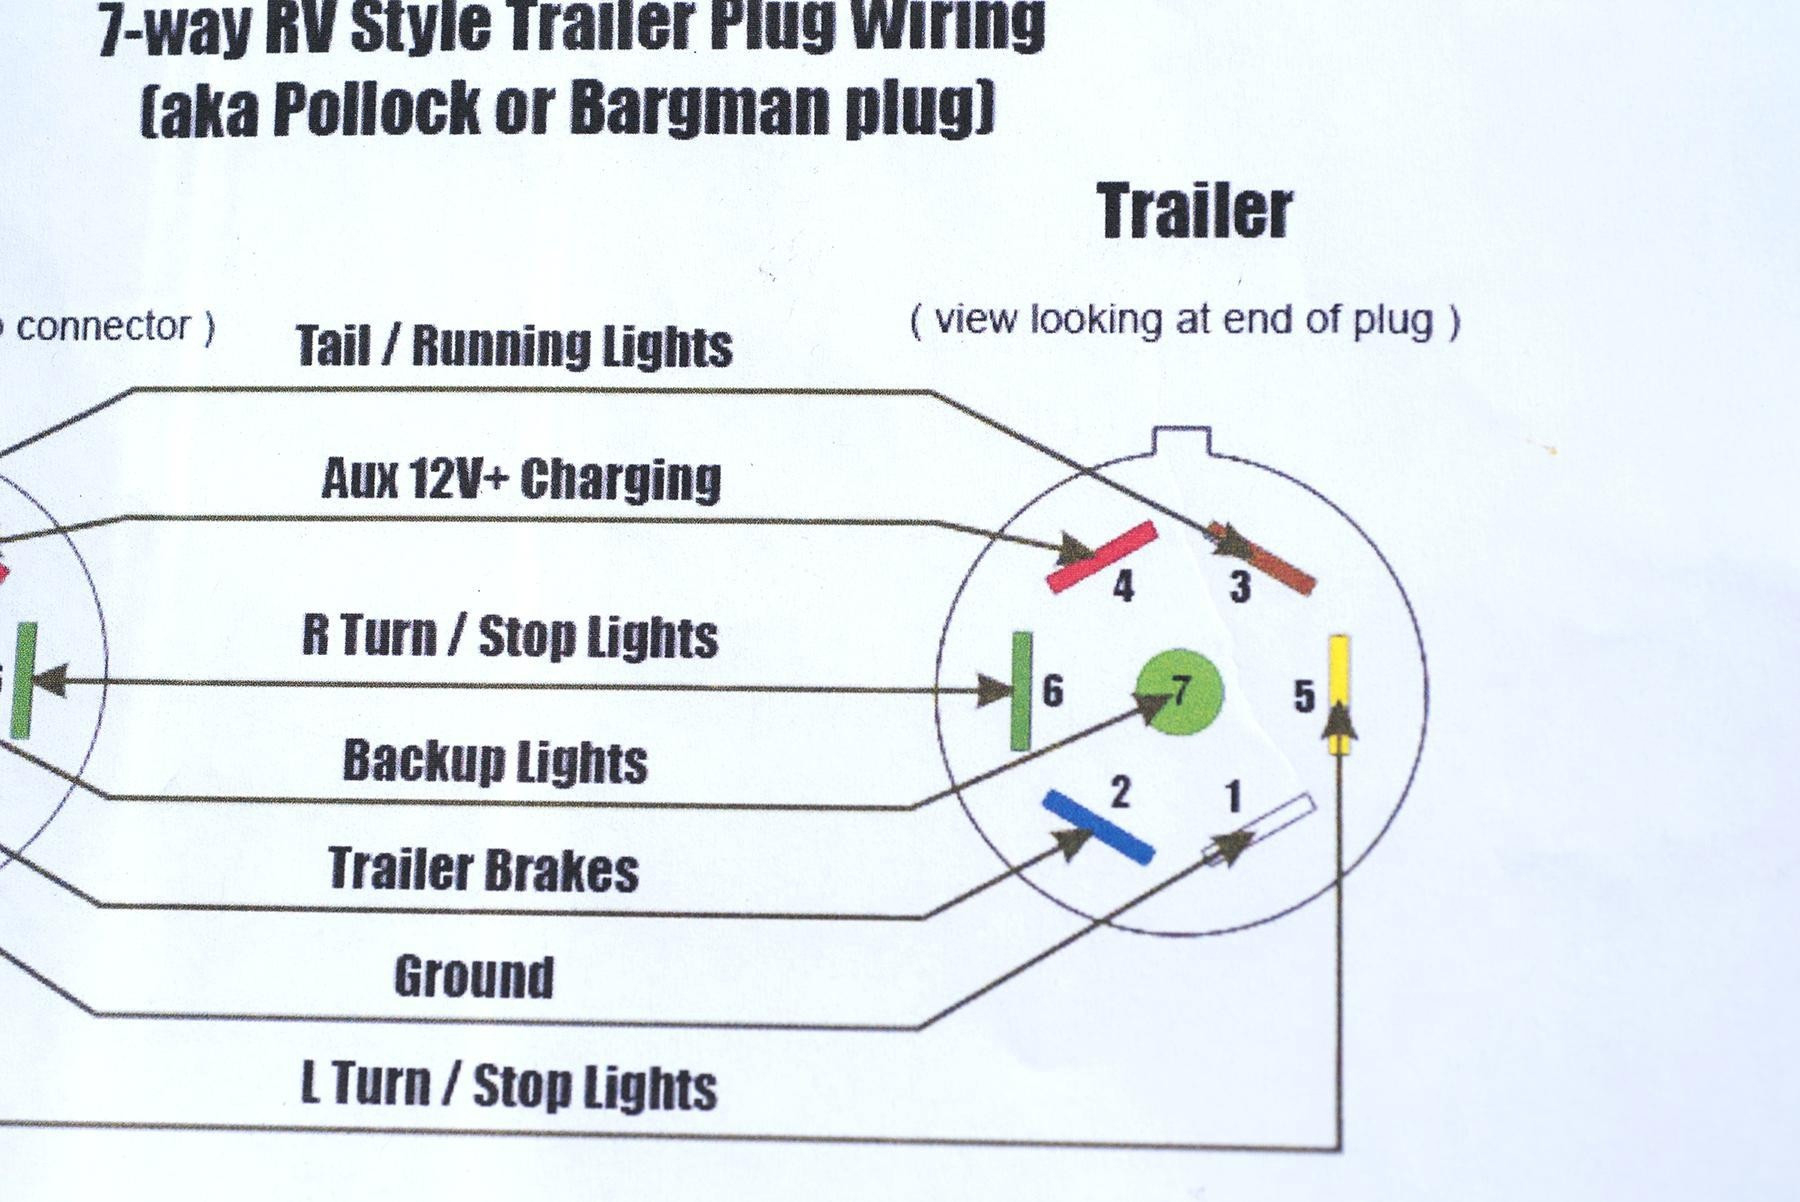 Dodge Ram 7 Pin Wiring Diagram - Wiring Diagrams Thumbs - Dodge Ram Trailer Plug Wiring Diagram